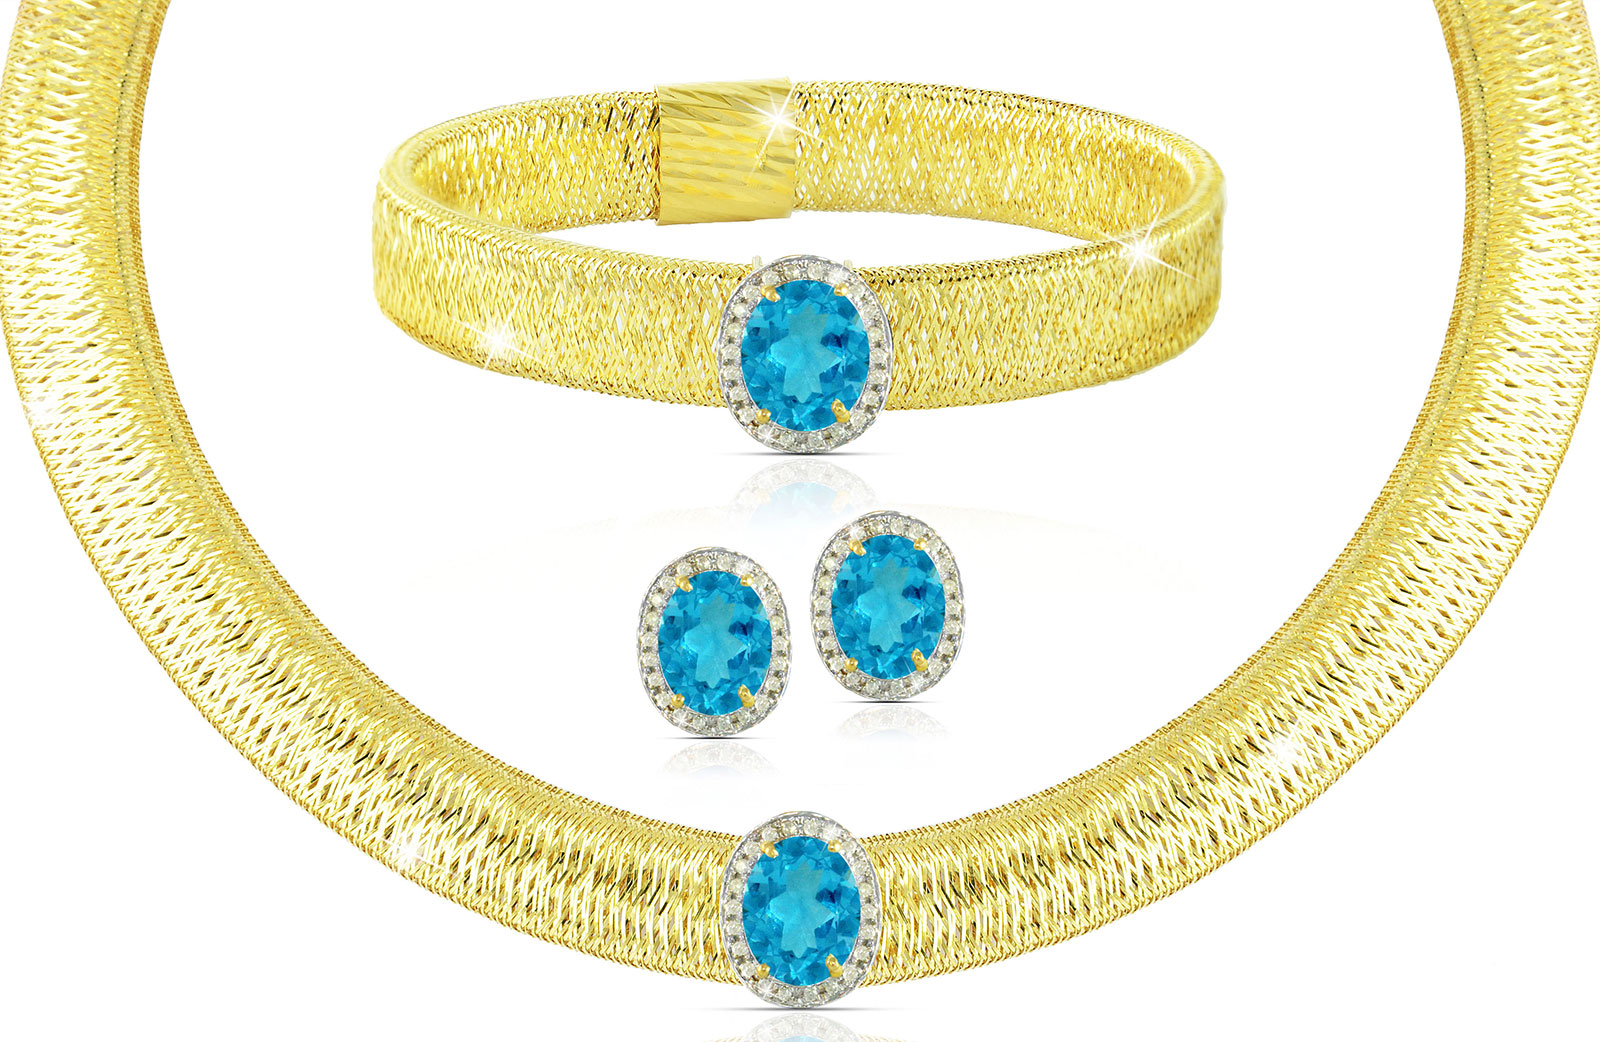 Vera Perla 18K  Gold 0.52Cts Genuine Diamonds and 10mm Genuine Swiss Blue Topazs Necklace, Bracelet and earrings Set